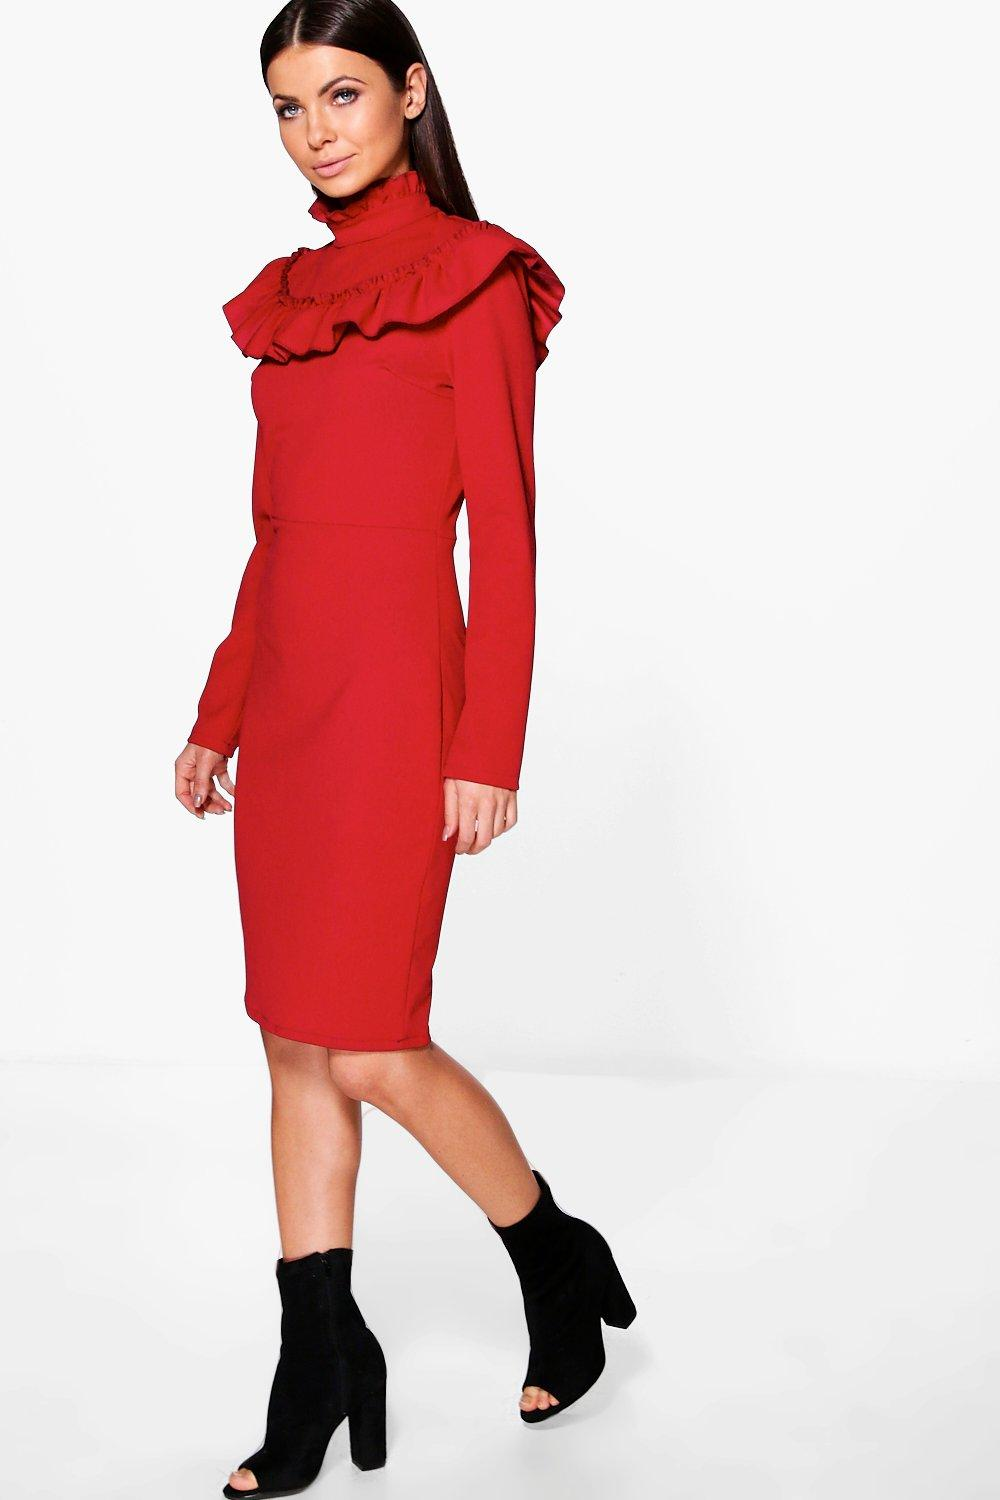 Find and save ideas about High collar dress on Pinterest. | See more ideas about Black knee high socks, Girls knee high socks and Collar dress. Winter Dresses, Summer Dresses For Women, High Collar Dress, Short Sleeve Dresses, Dresses With Sleeves, Long Dresses, Blue Dresses, Cotton Shorts, High Collar, Drop Waist, Hemline, Cowls, Long.